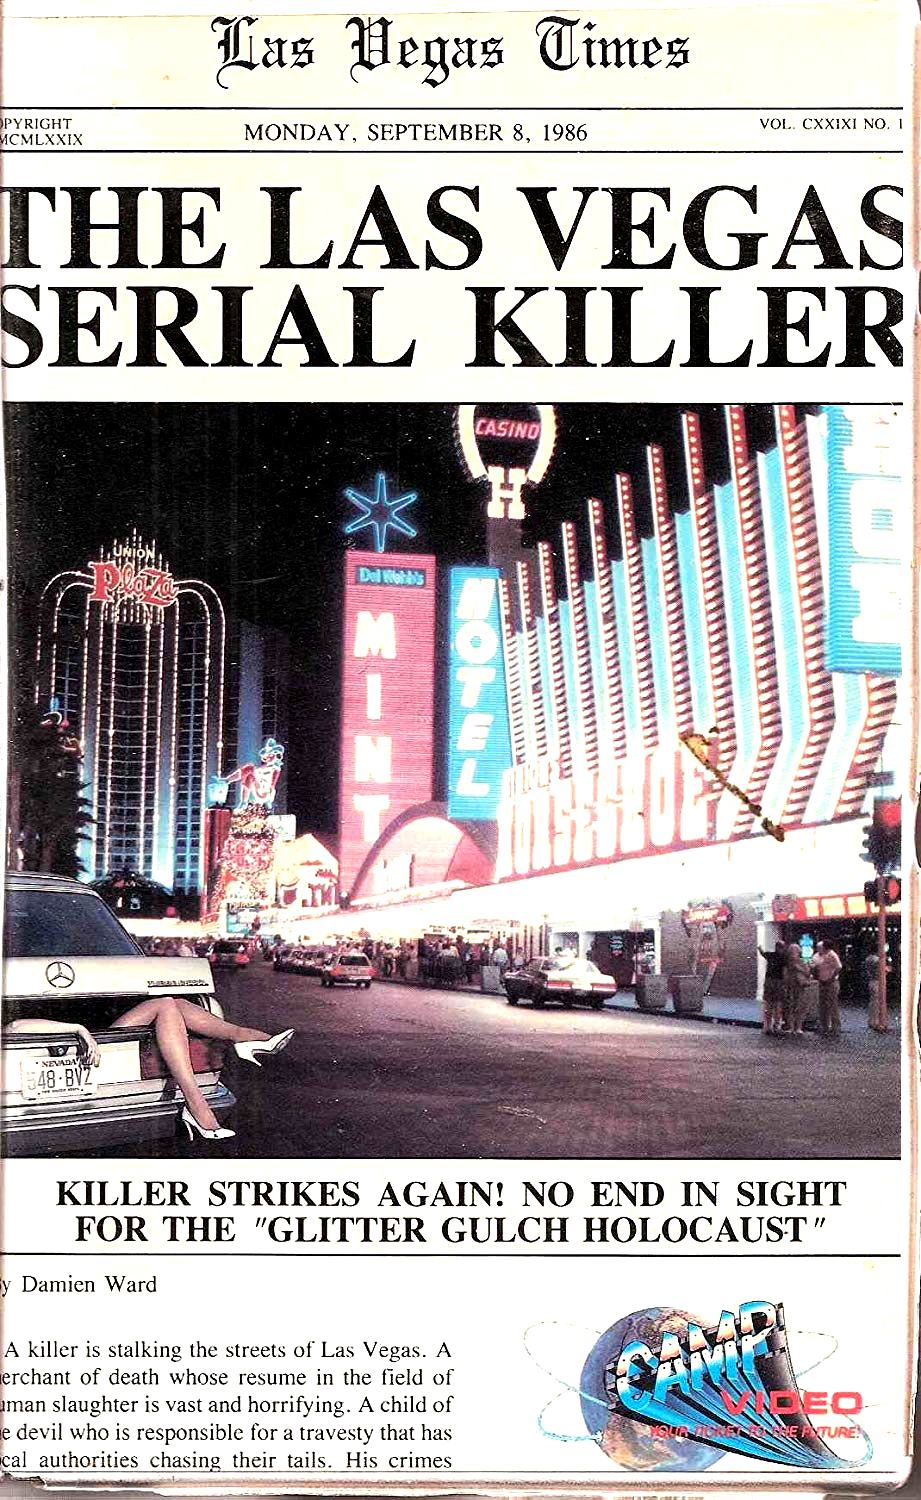 The Las Vegas Serial Killer (1986) poster